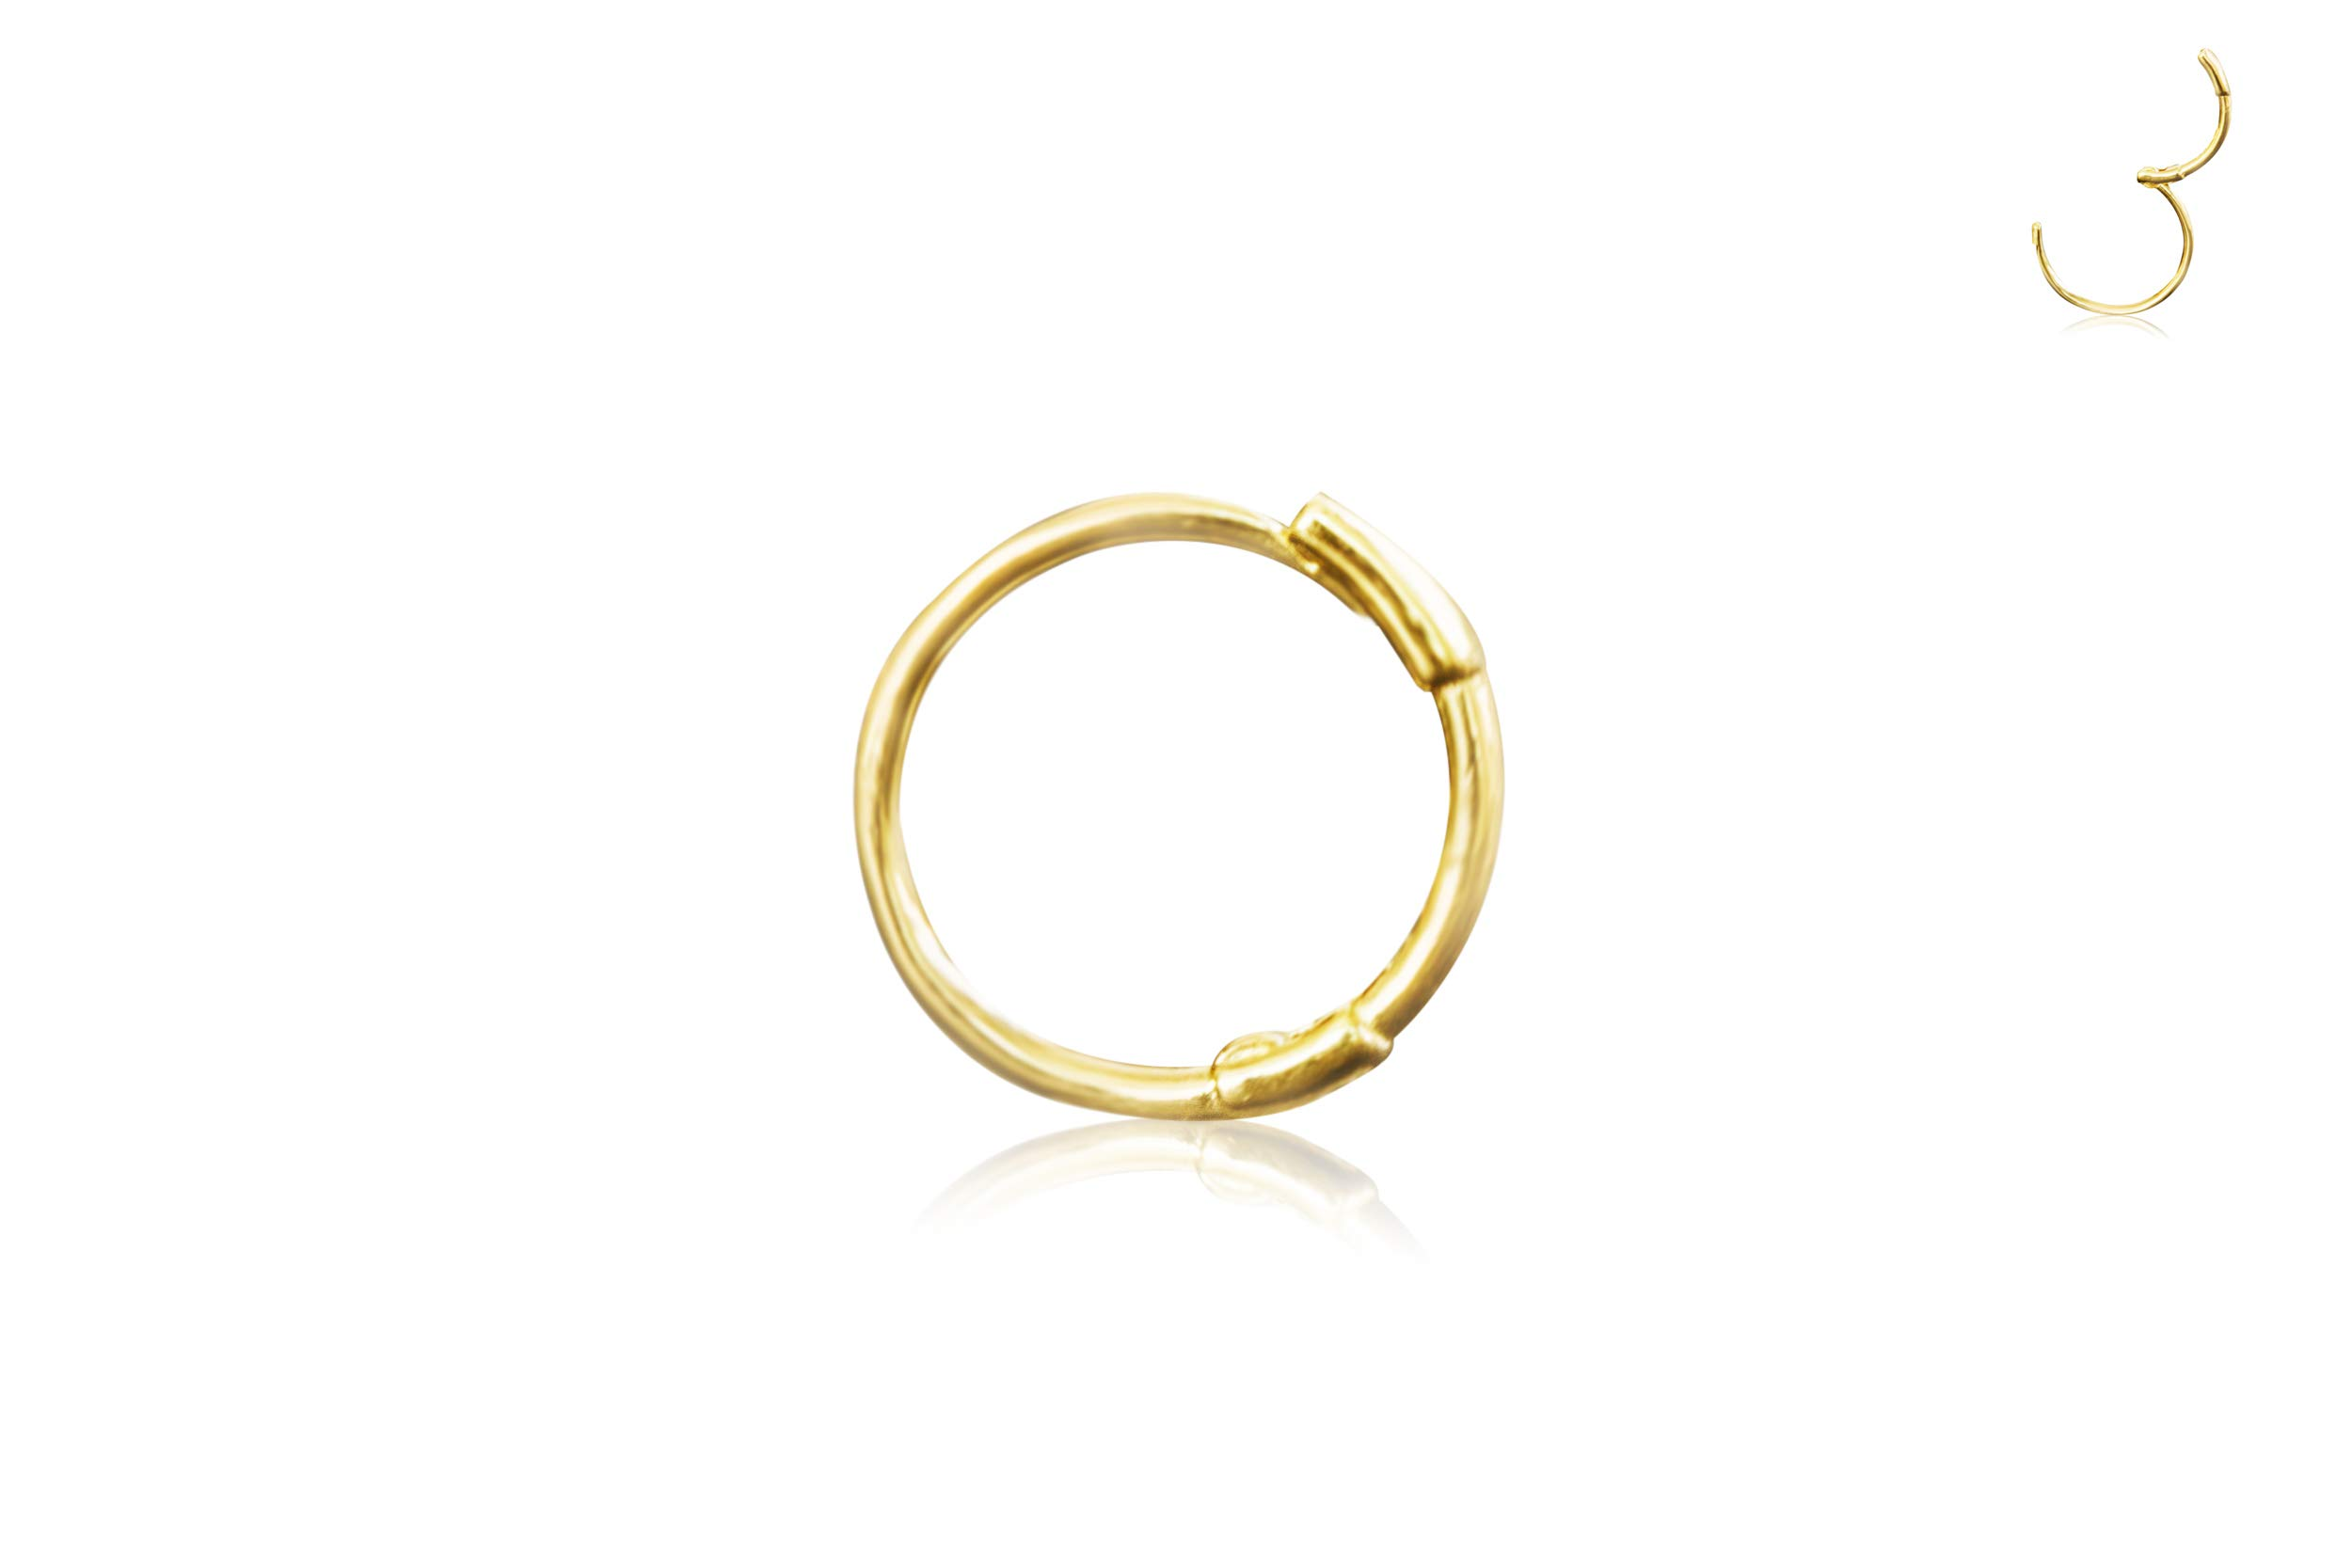 14K Solid Gold Jewelry 4mm Open Round Circle Tragus Cartilage Snug Rook Daith Helix Ear Segment Clicker Hoop Ring Piercing Earring For Women by ONDAISY (Image #1)